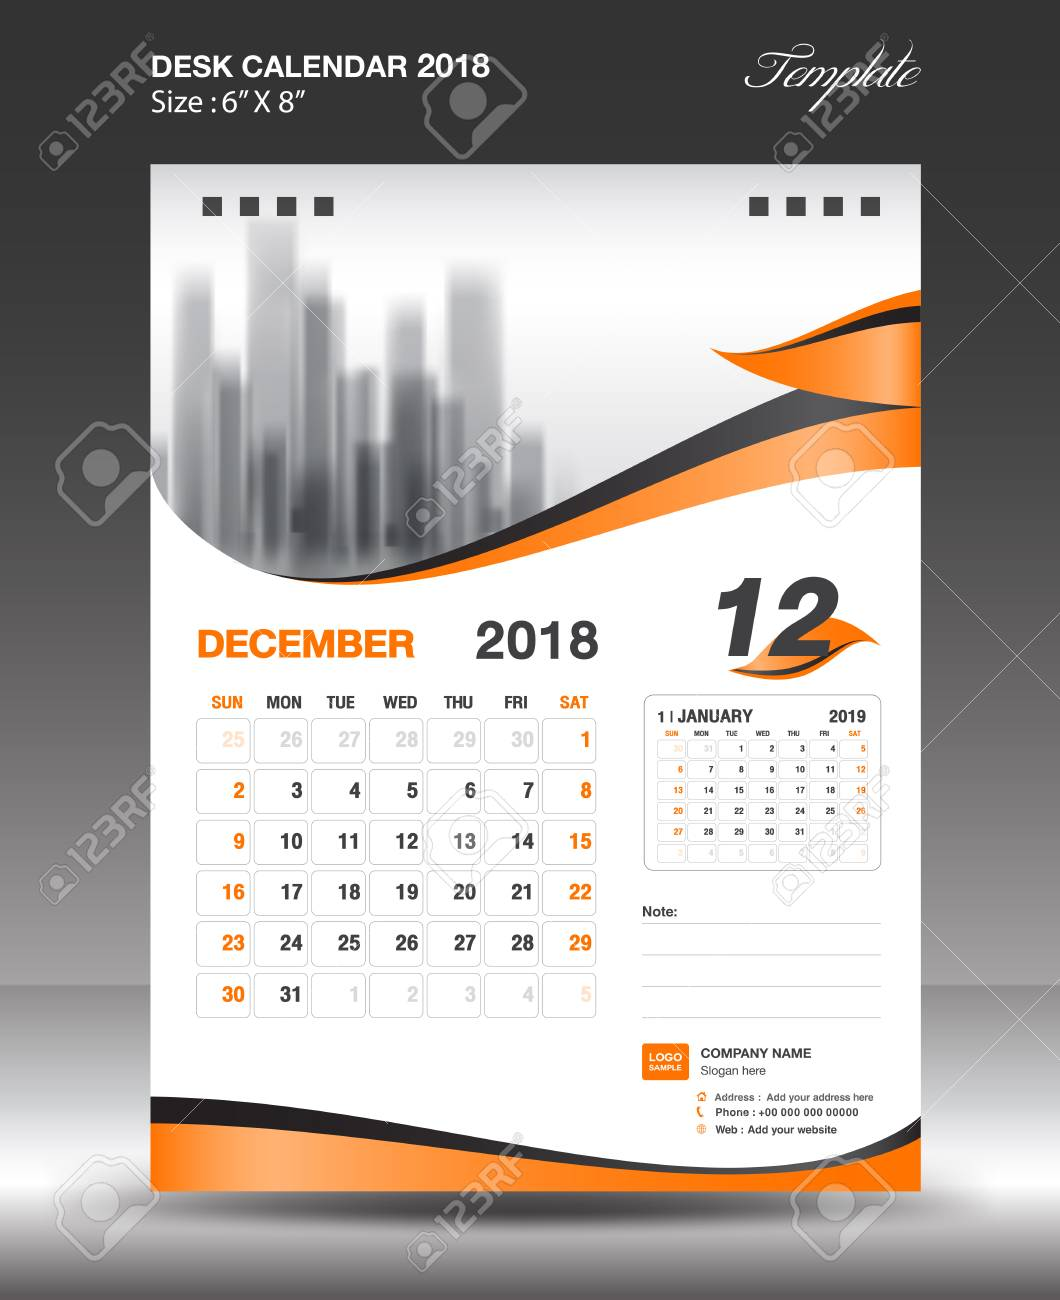 December Desk Calendar 2018 Template Design Flyer Vector, Business ...